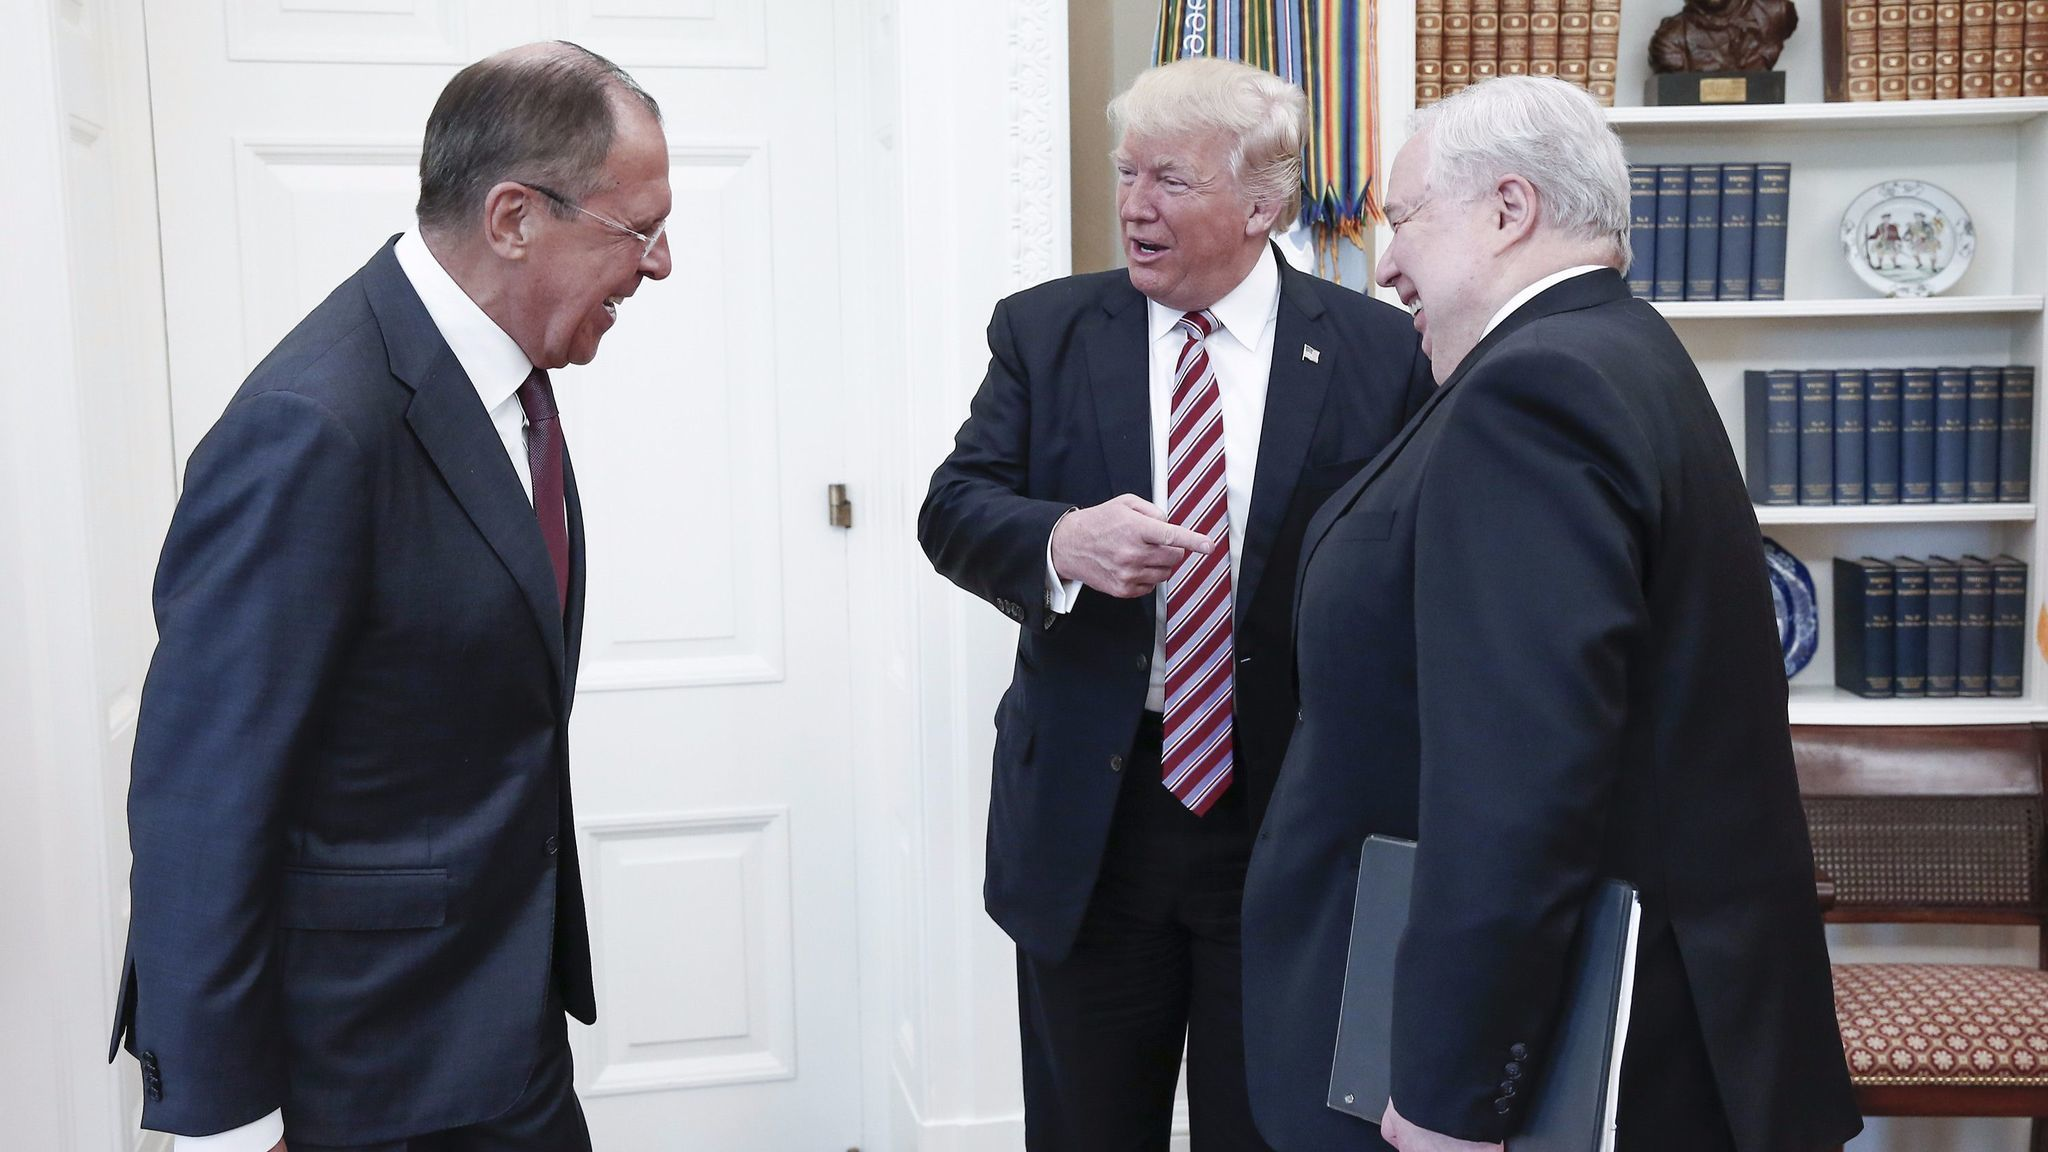 From left, Russian Foreign Minister Sergei Lavrov, President Trump and Russian Ambassador Sergey Kislyak in the Oval Office on May 10.